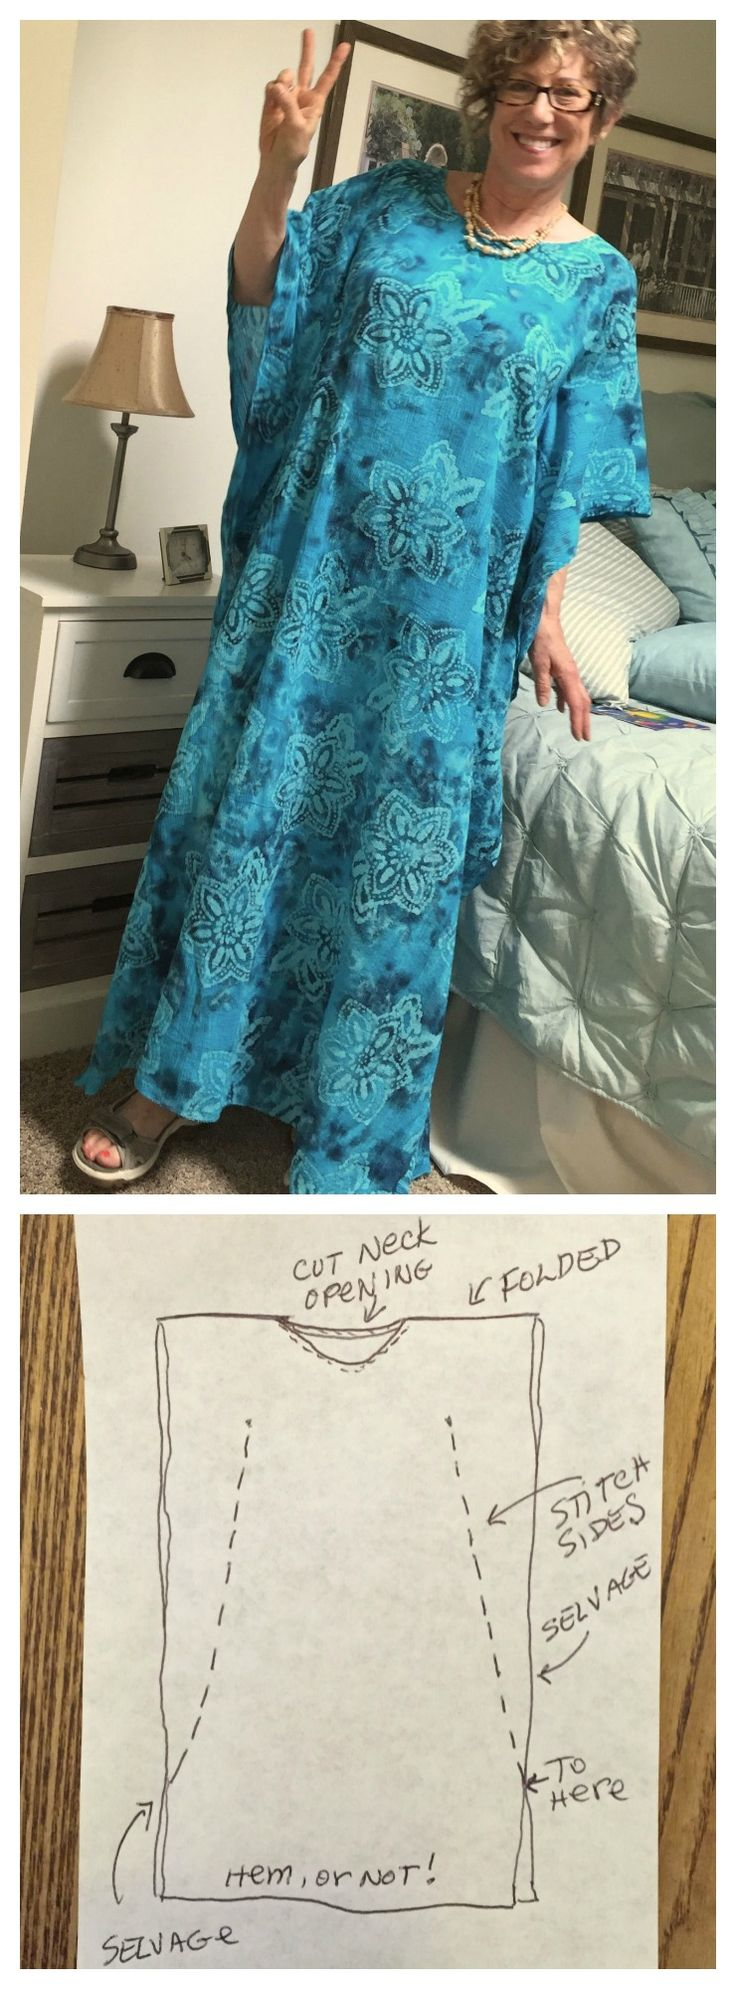 """MAKE AN EASY KAFTAN (or CAFTAN) I used 2 yards of 44-45"""" soft batik print that looks good on both sides. Cut a neck opening, roll inward and stitch to finish edge. Sew two side seams (each seam started 10"""" from top + 8"""" from side). I left the selvage edges unfinished and stitched a zigzag hem. Easy!"""